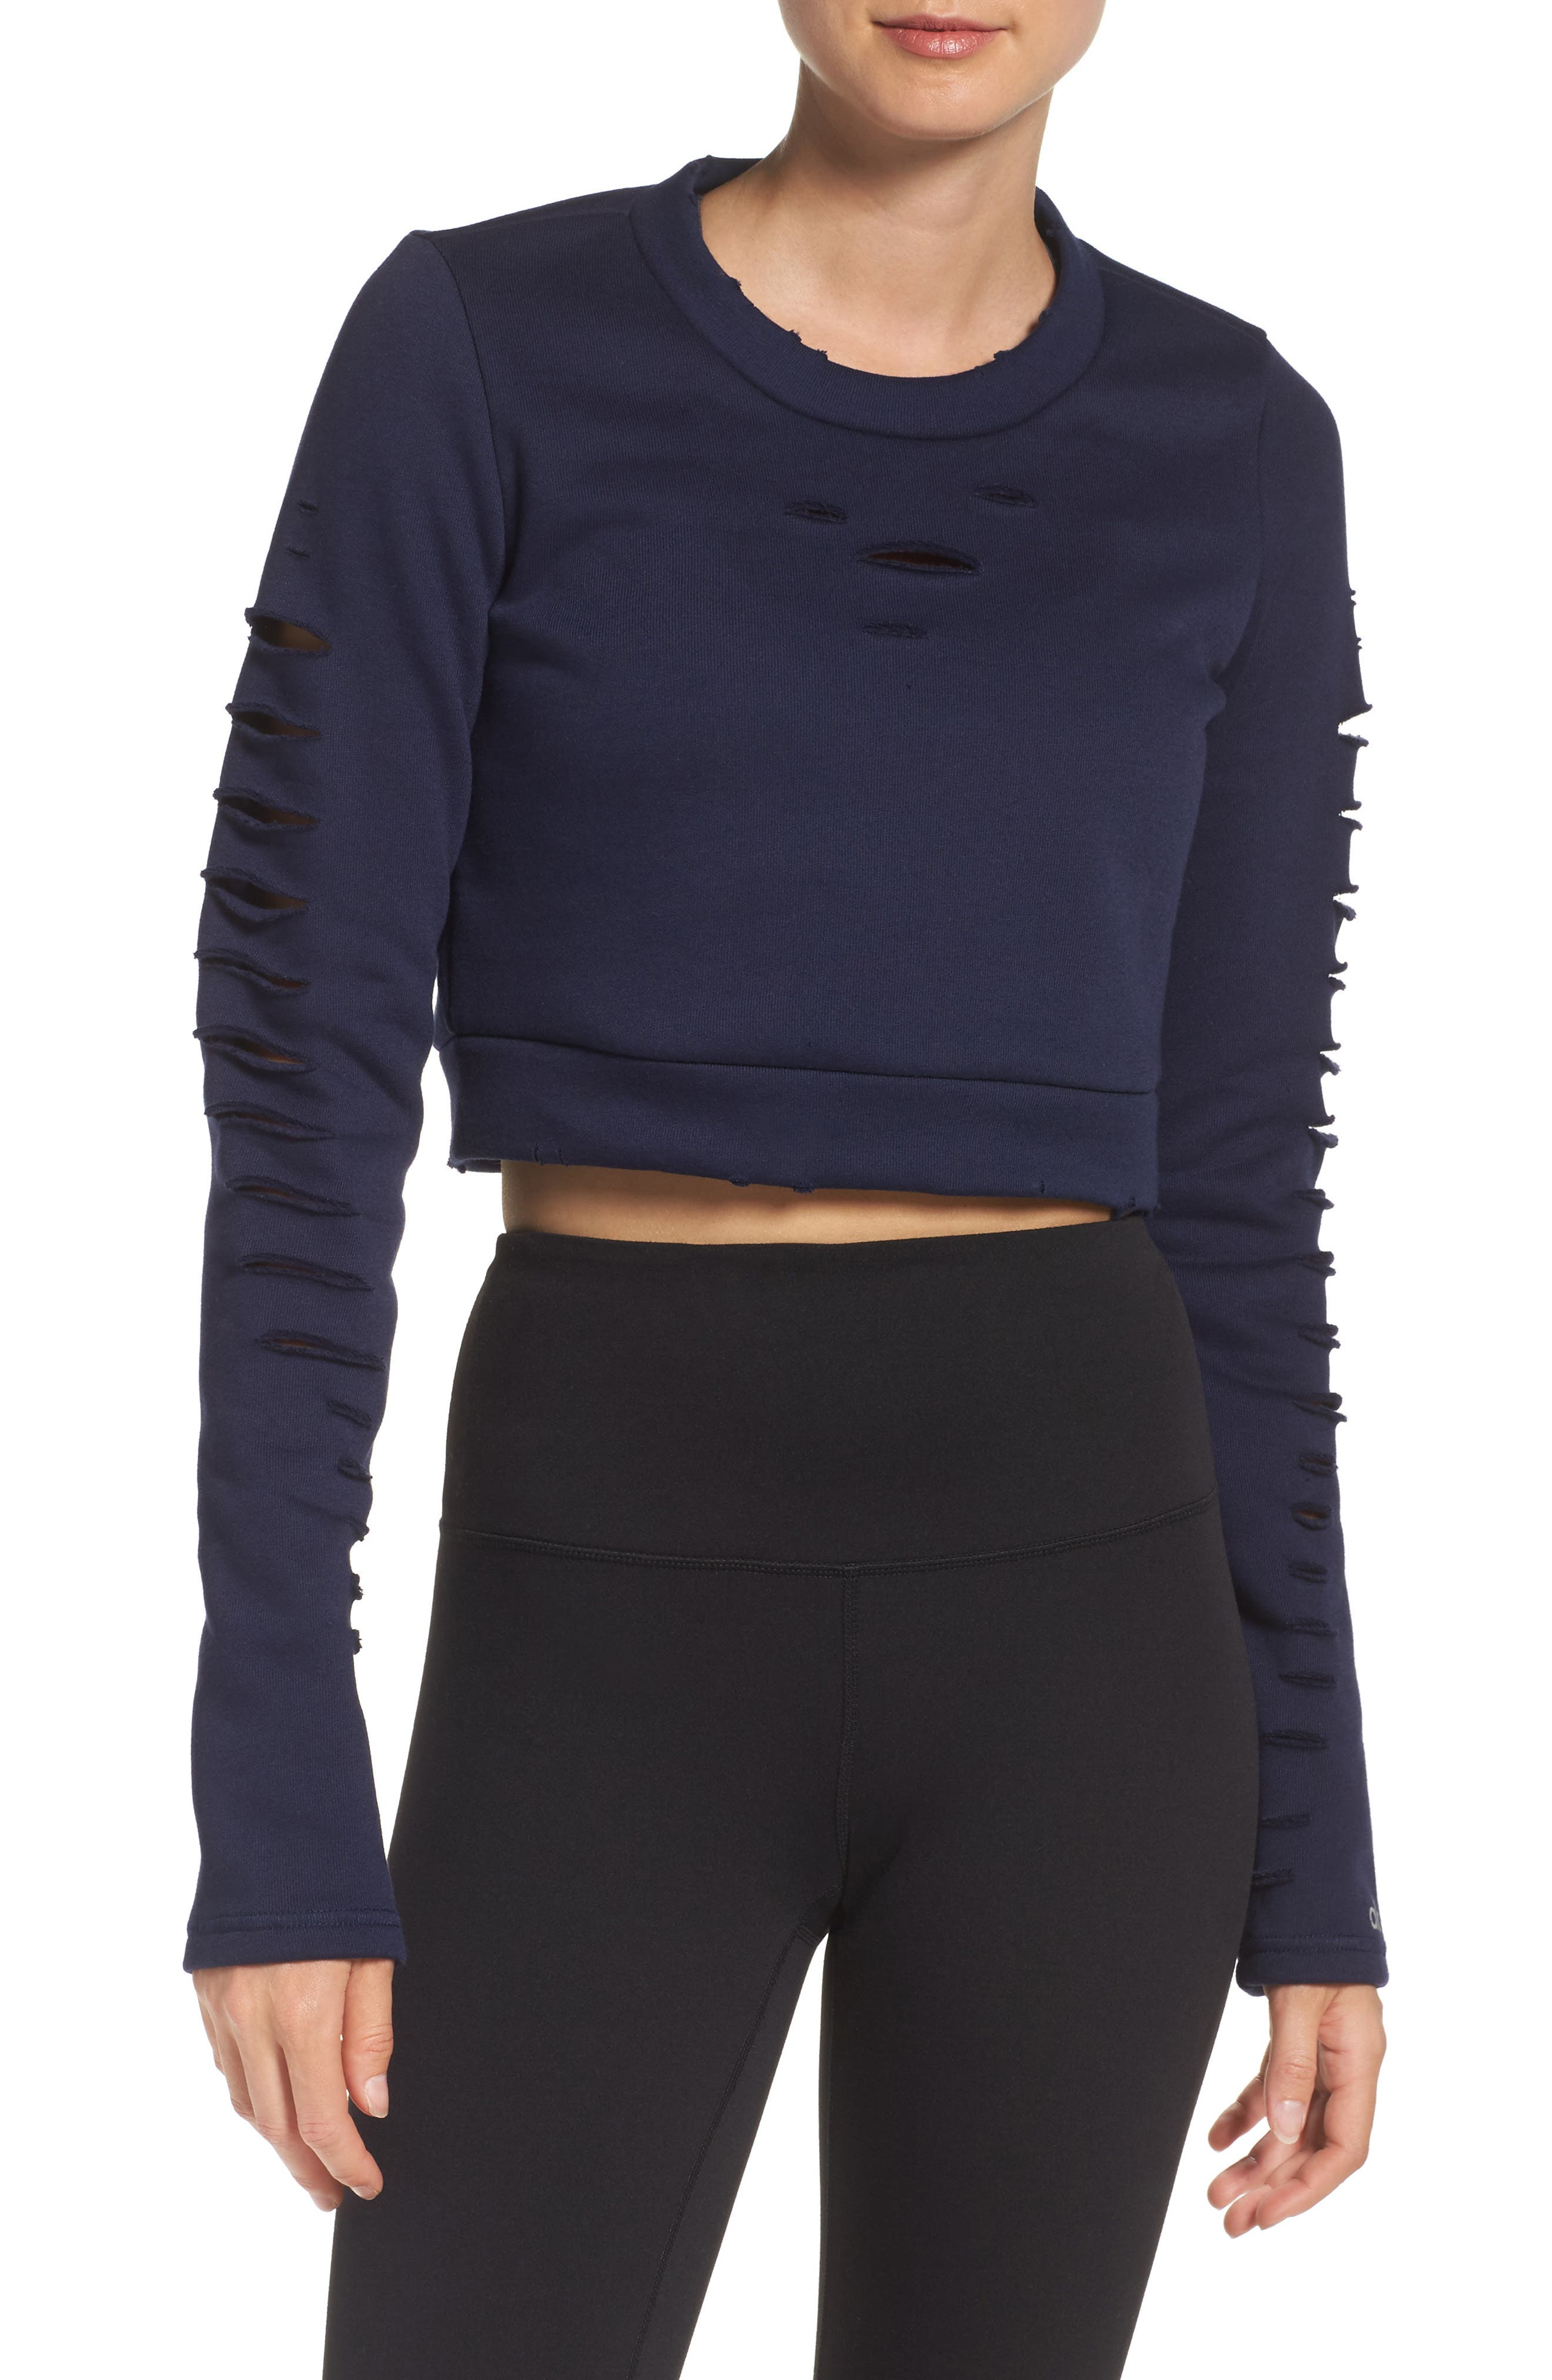 Ripped Warrior Crop Top,                         Main,                         color, Navy